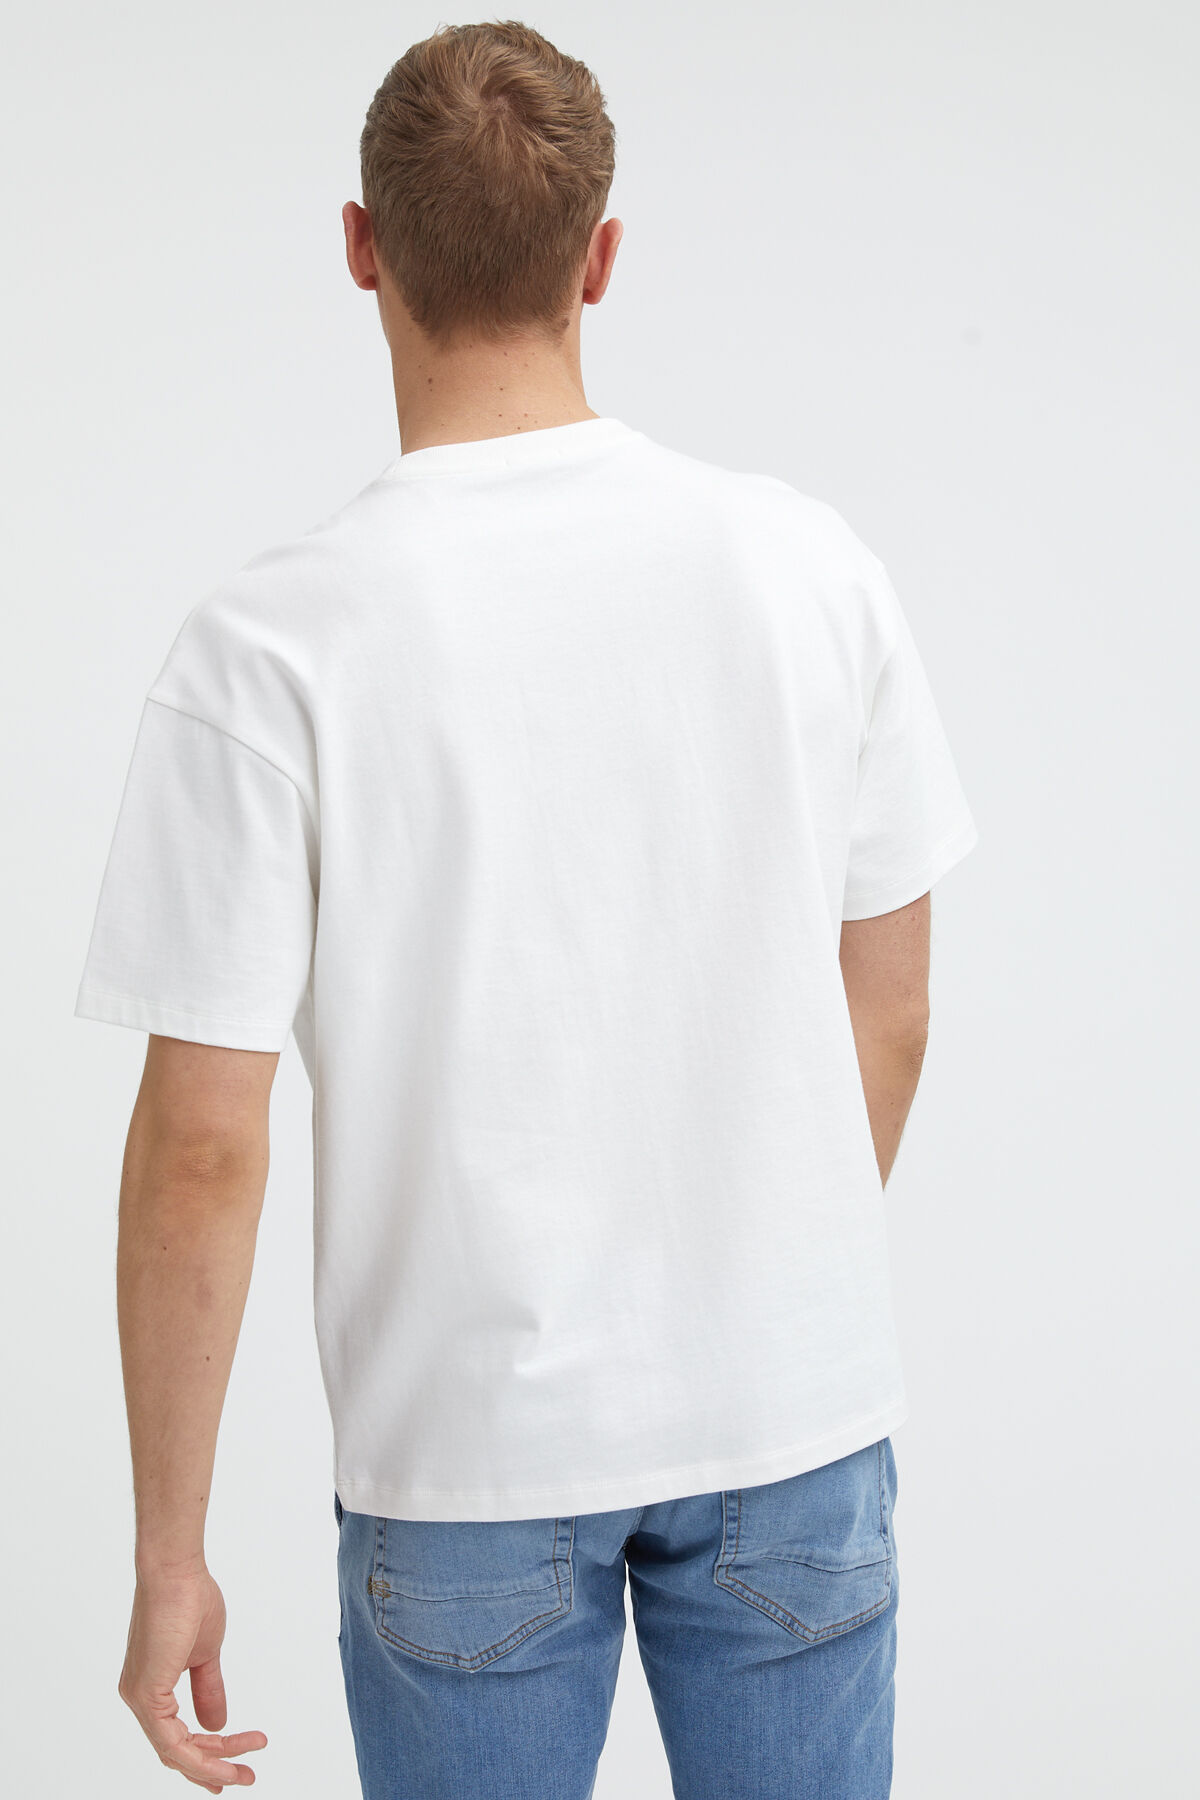 FIGHTING CRANE TEE Woven Hem Label - Boxy Fit